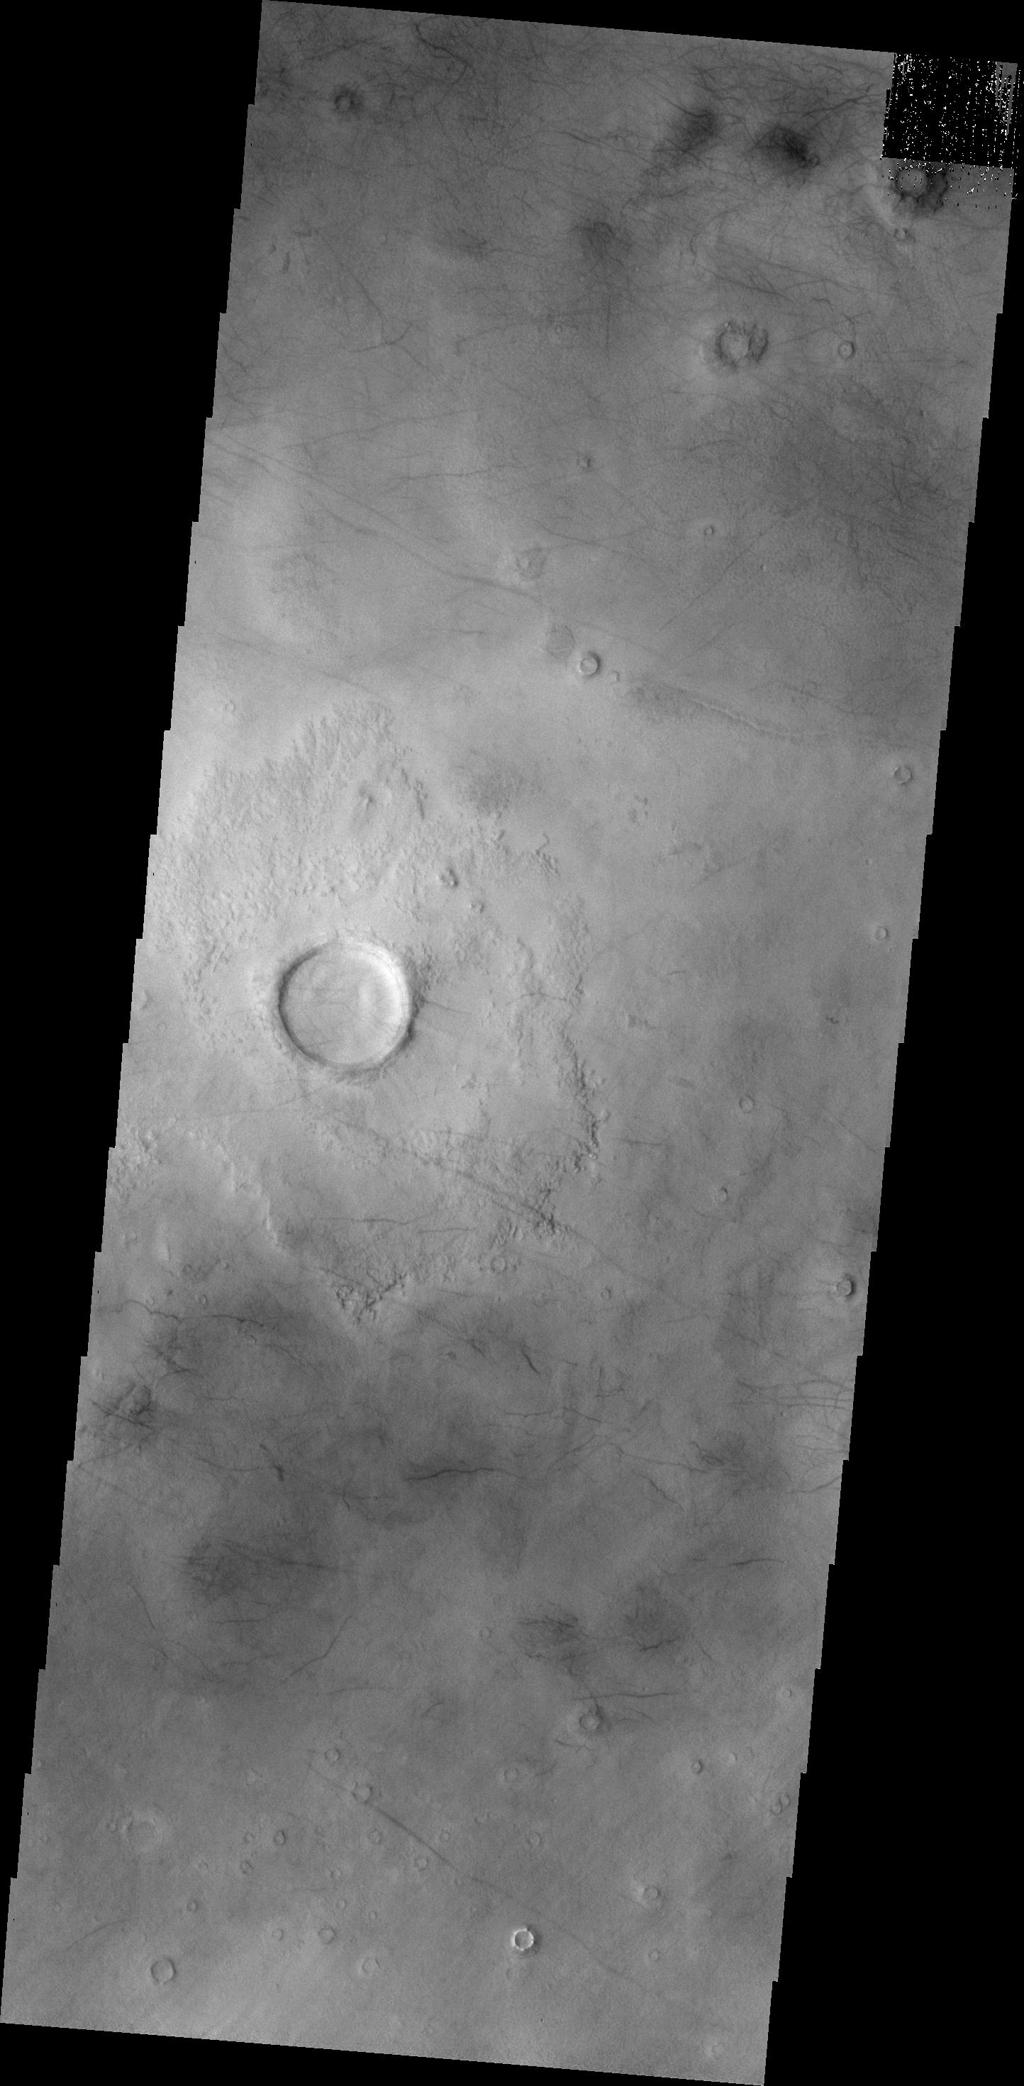 This image from NASA's 2001 Mars Odyssey of central Utopia Planitia shows some dust devil tracks. These features are common in this region of Mars.